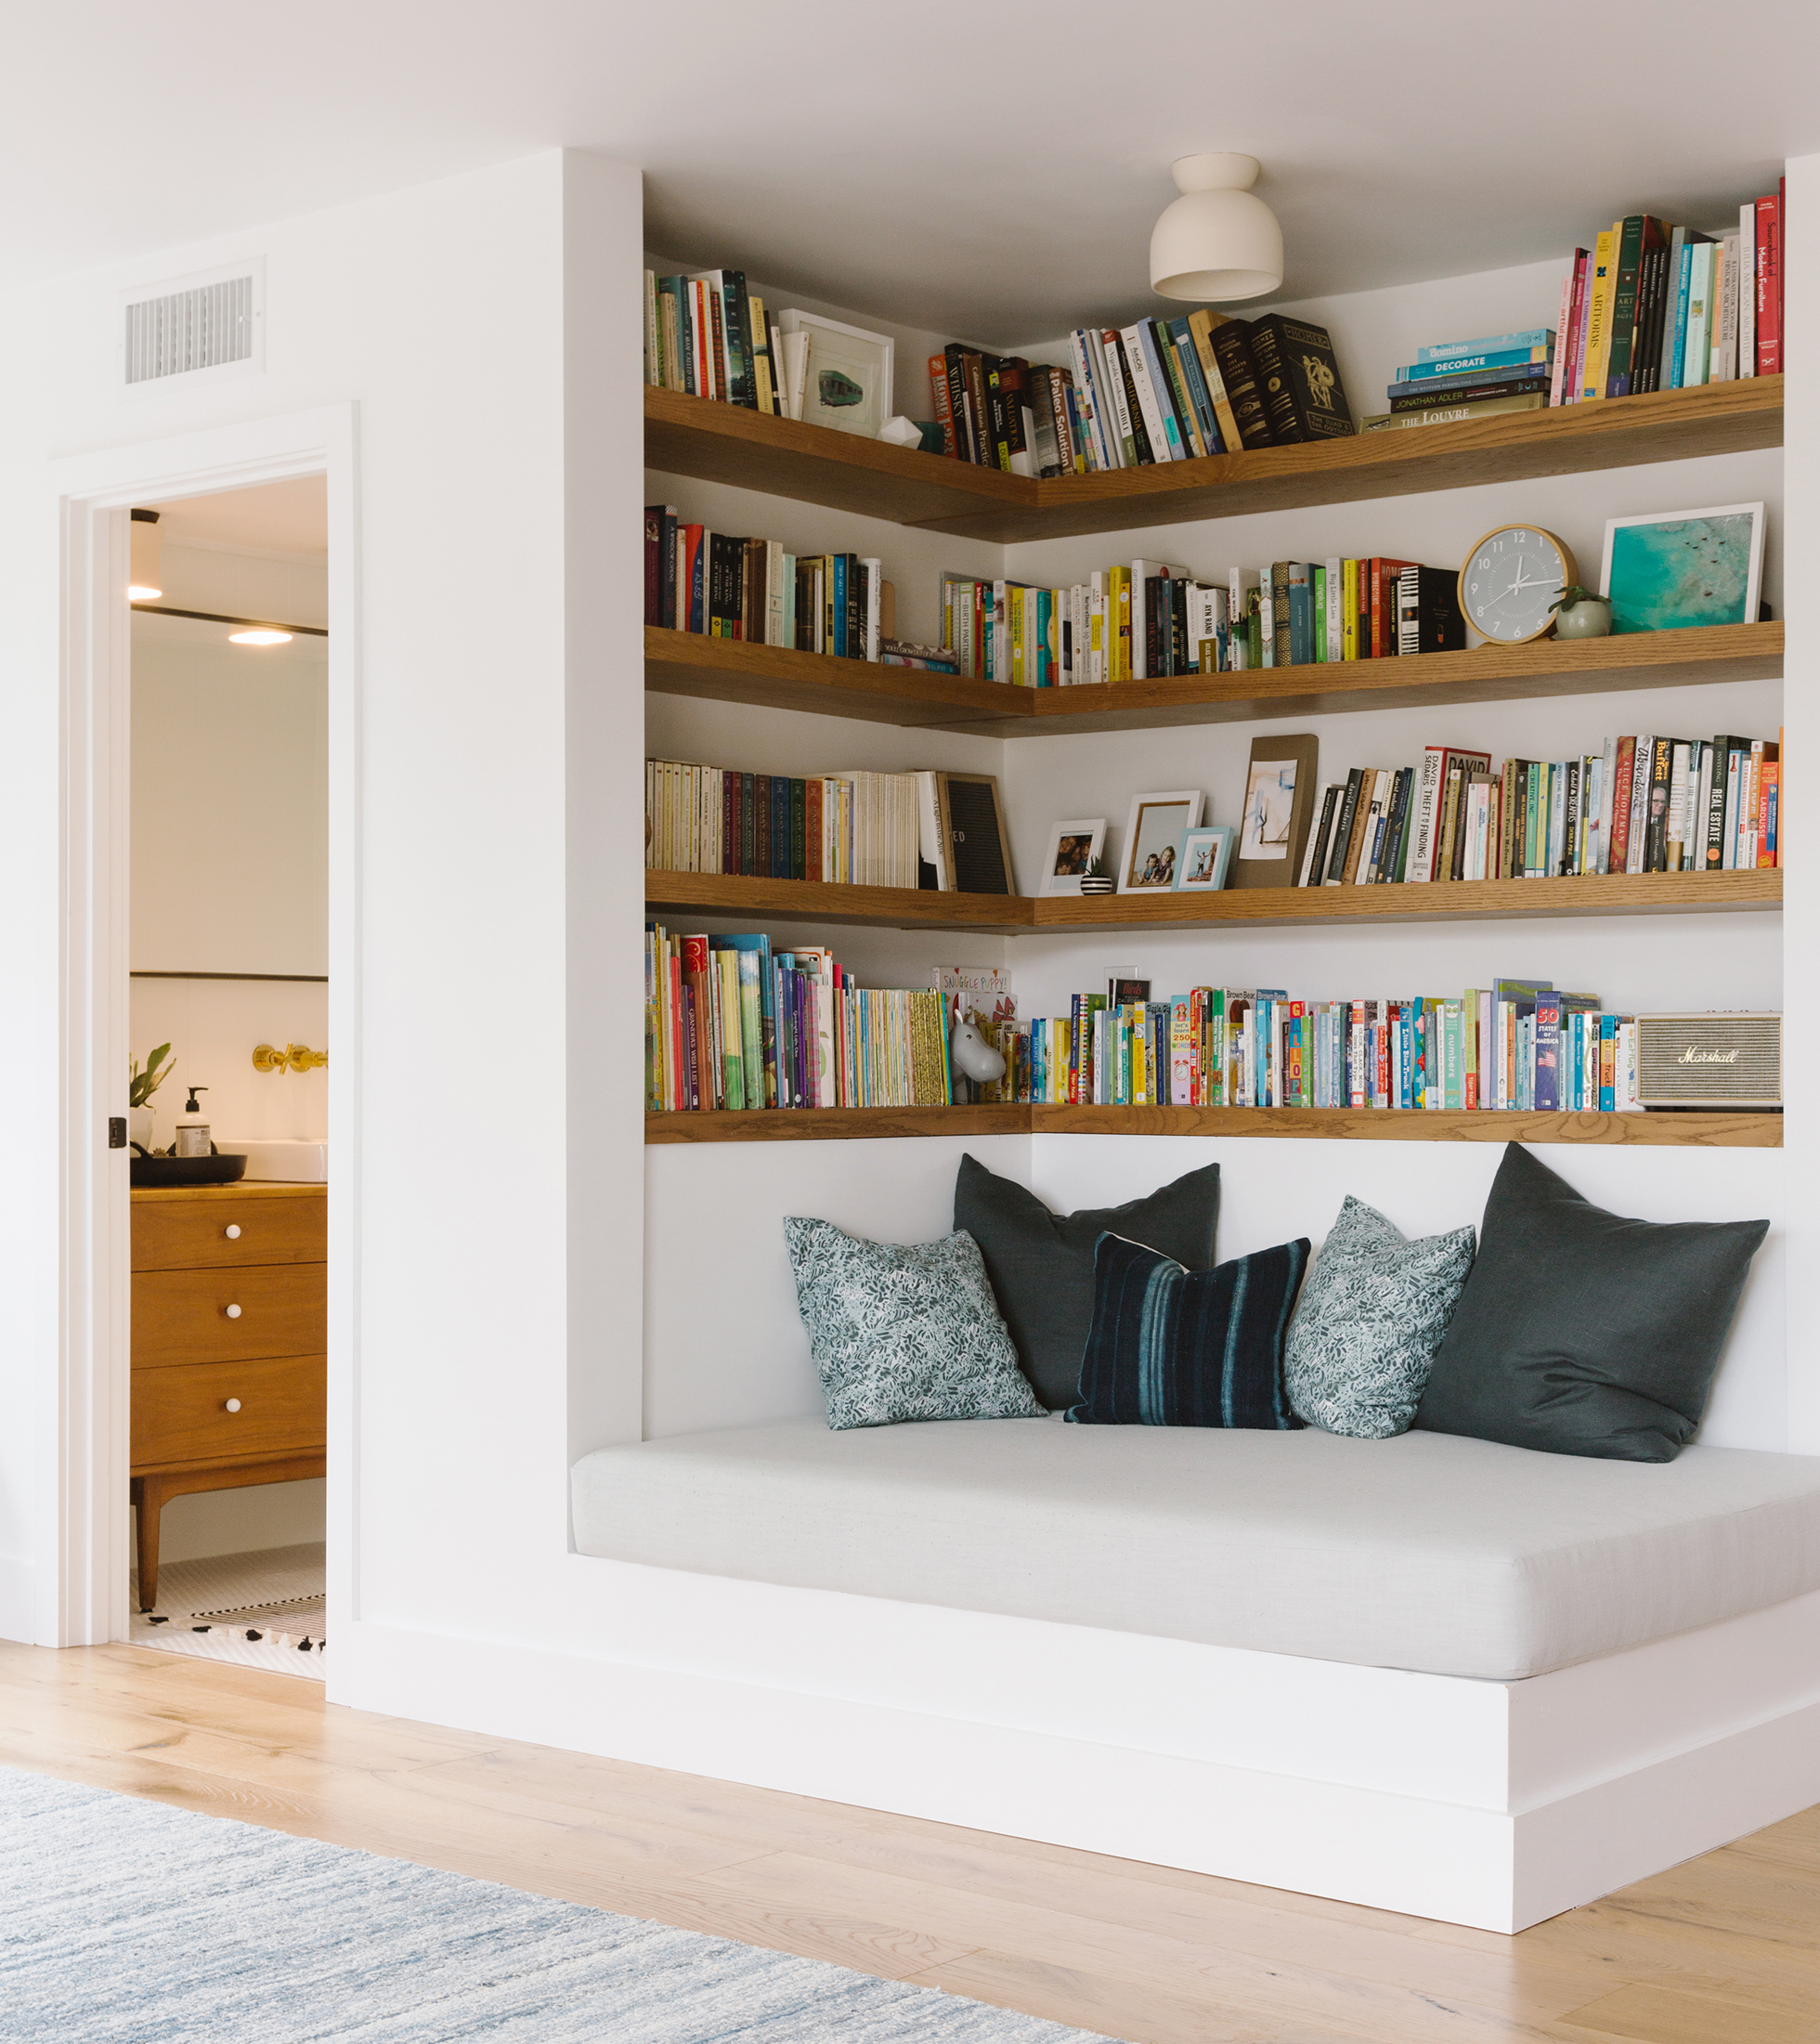 White built-in bookshelves with cushioned bench at bottom